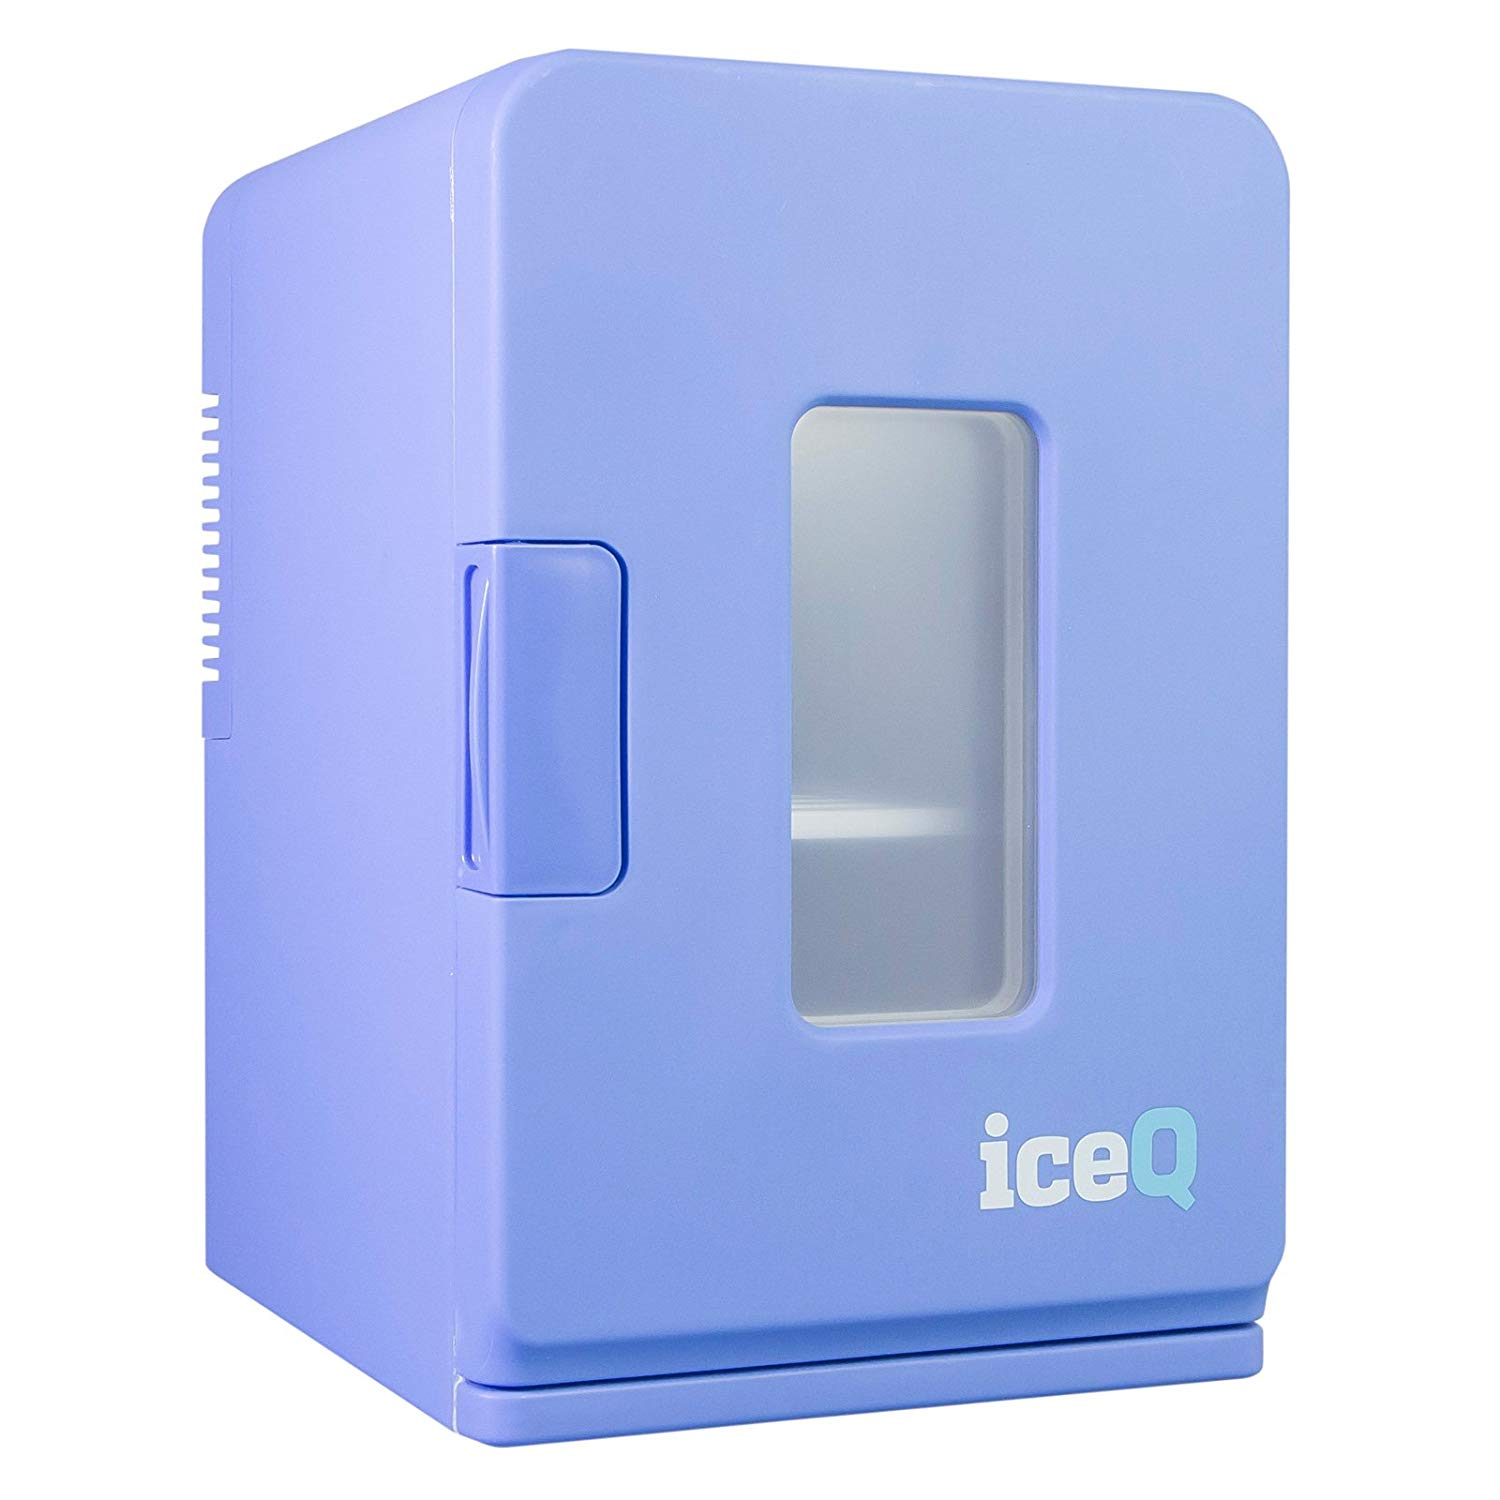 iceQ 15 Litre Deluxe Portable Mini Fridge With Window – Blue